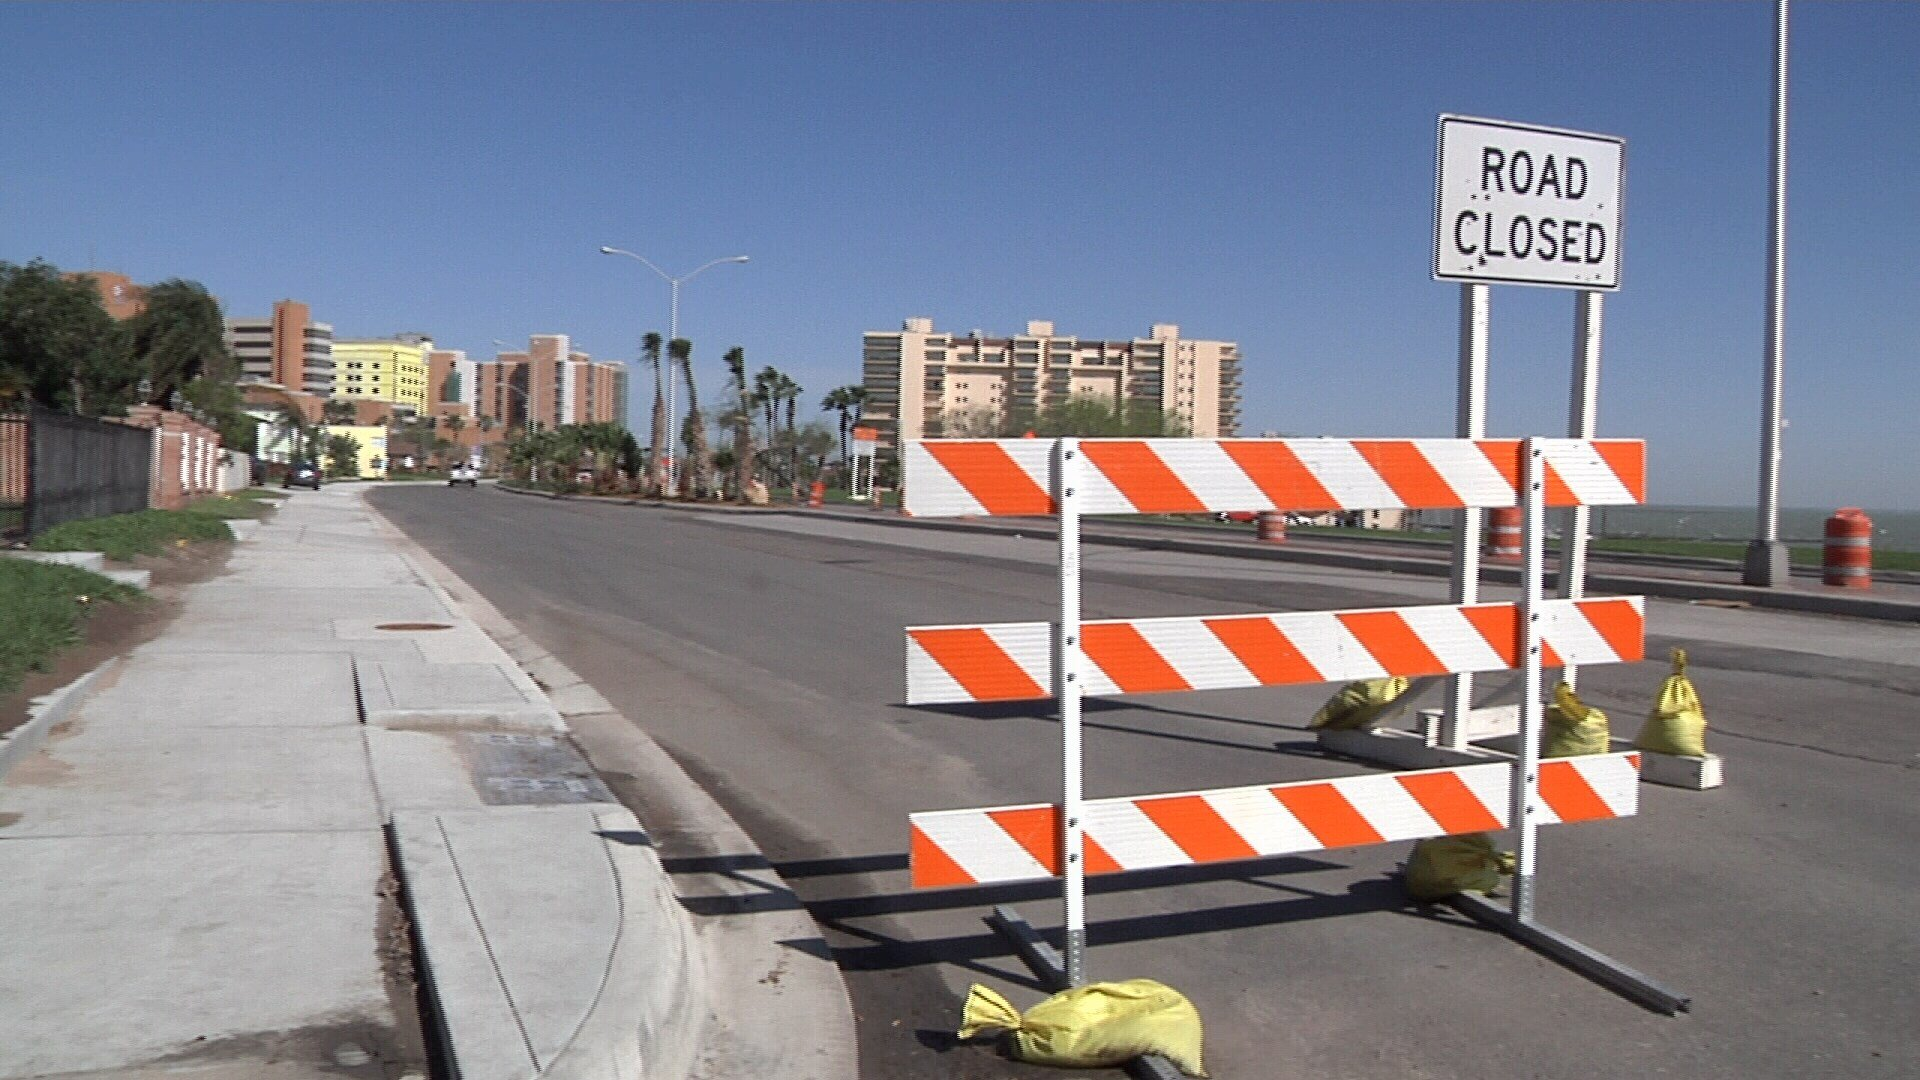 The City Streets Department says Ocean Drive between Buford Street and Louisiana Avenue will open at the end of March.